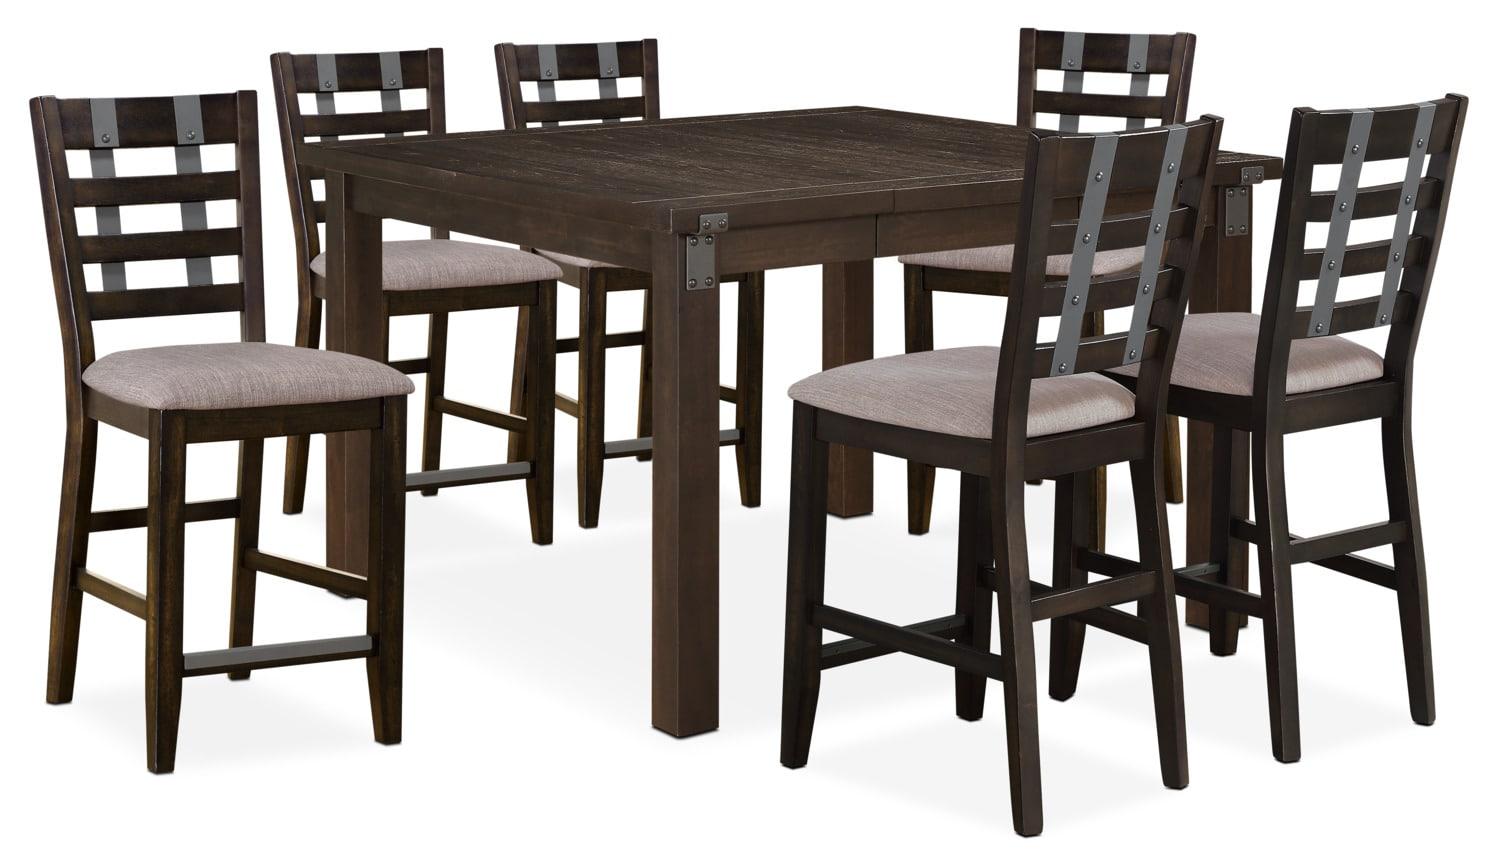 hampton counter height dining table and 6 stools cocoa value city furniture and mattresses. Black Bedroom Furniture Sets. Home Design Ideas